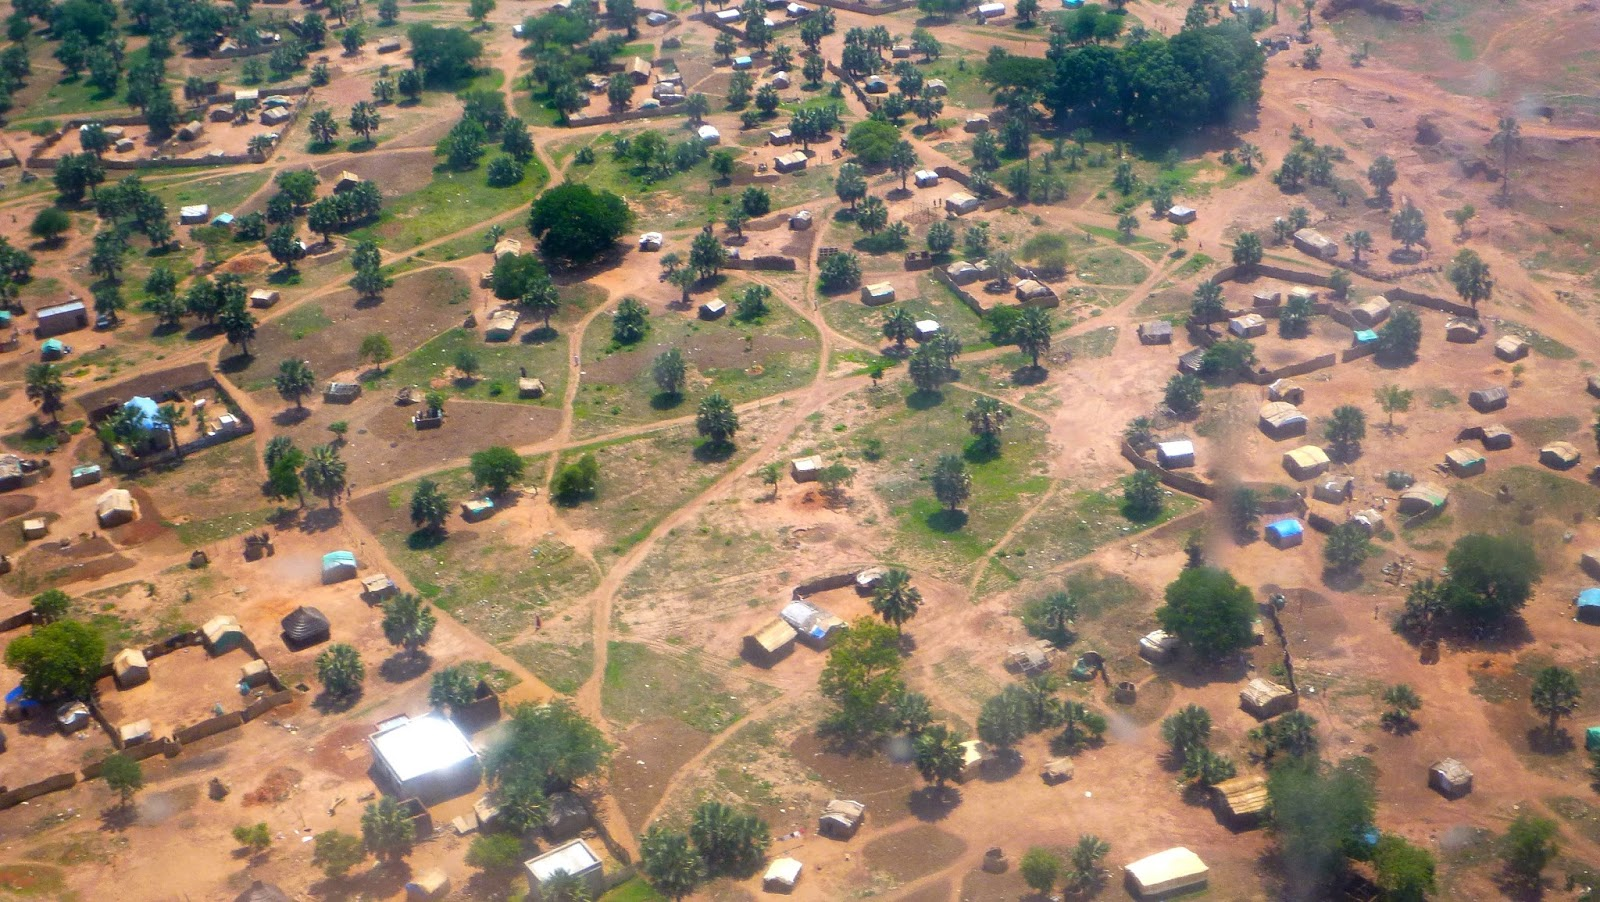 Areial photo of Aweil